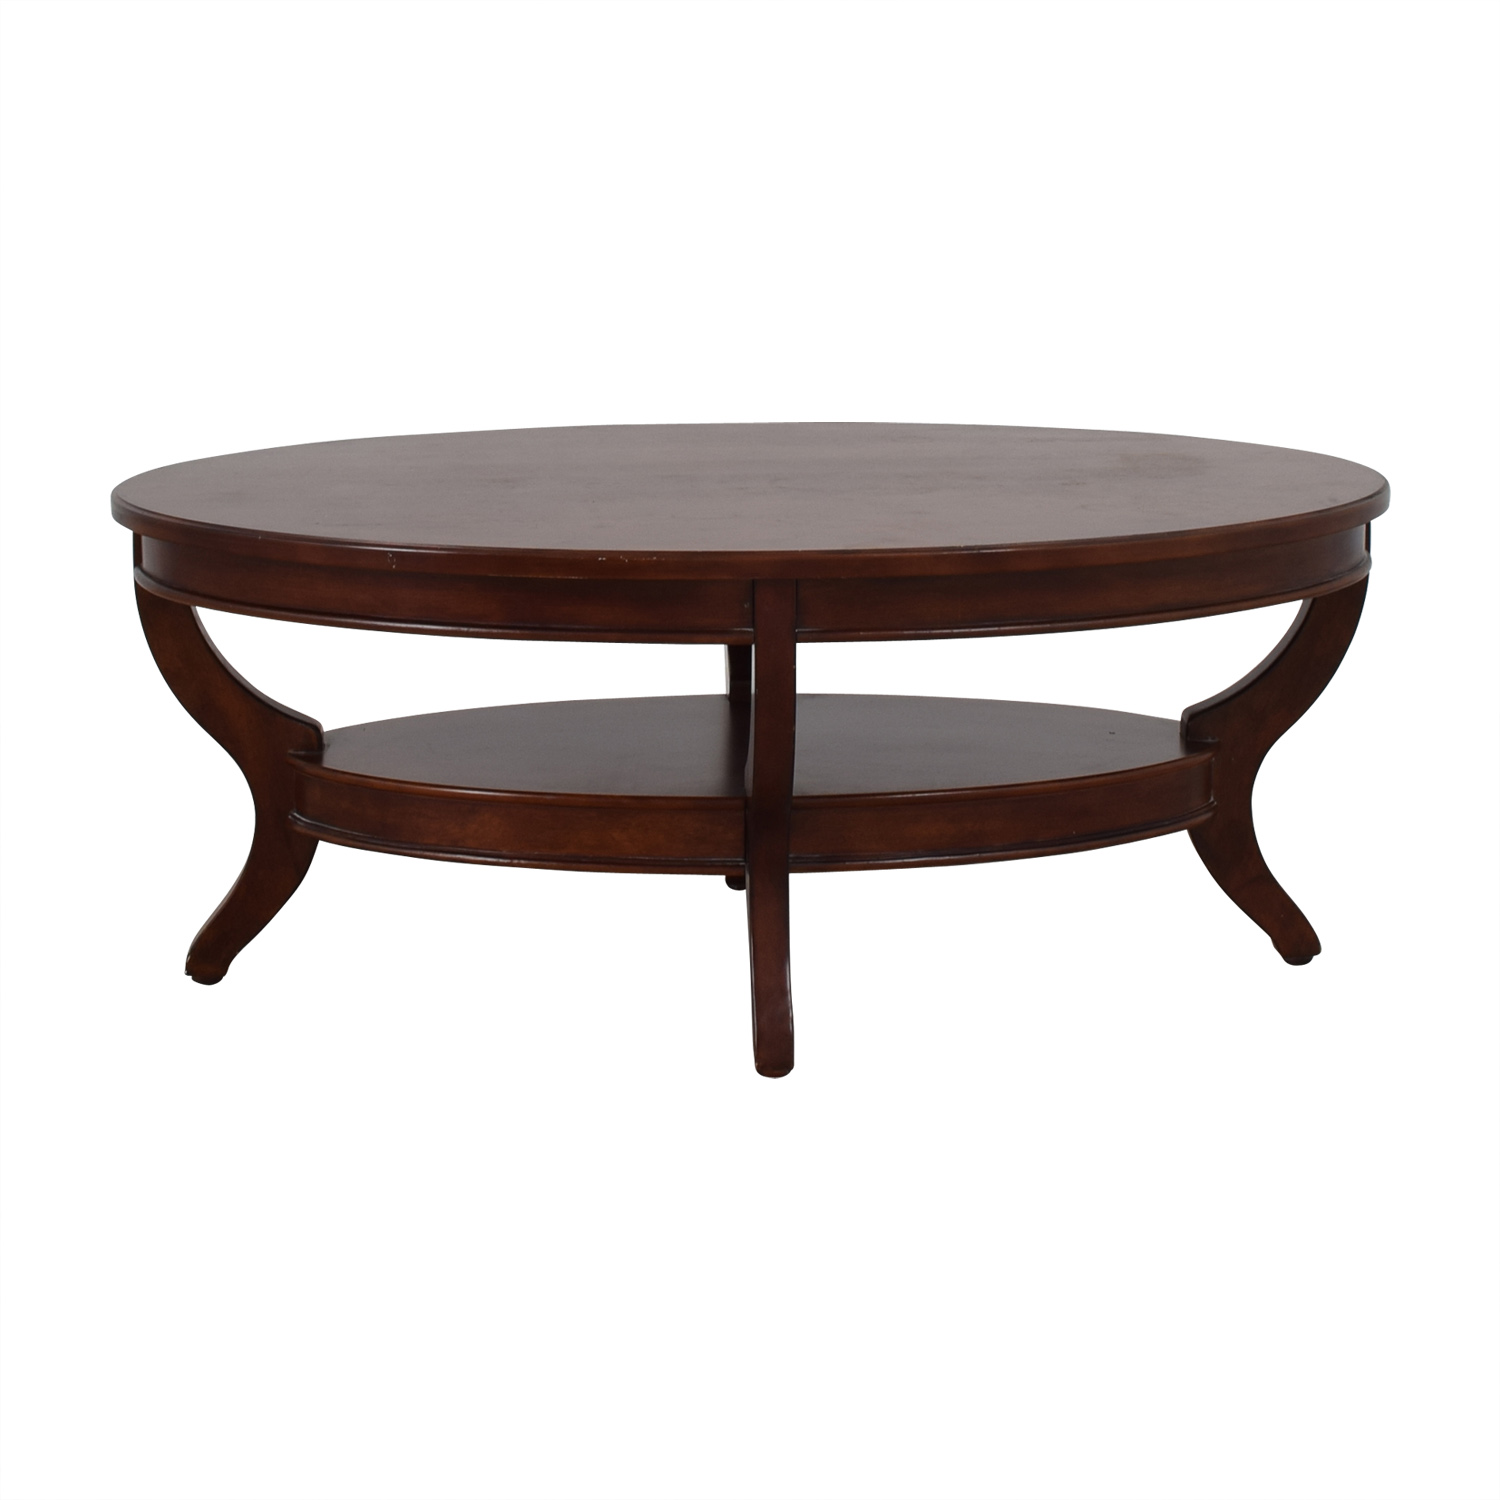 Homelegance Furniture Homelegance Furniture Oval Wood Table with Shelf price